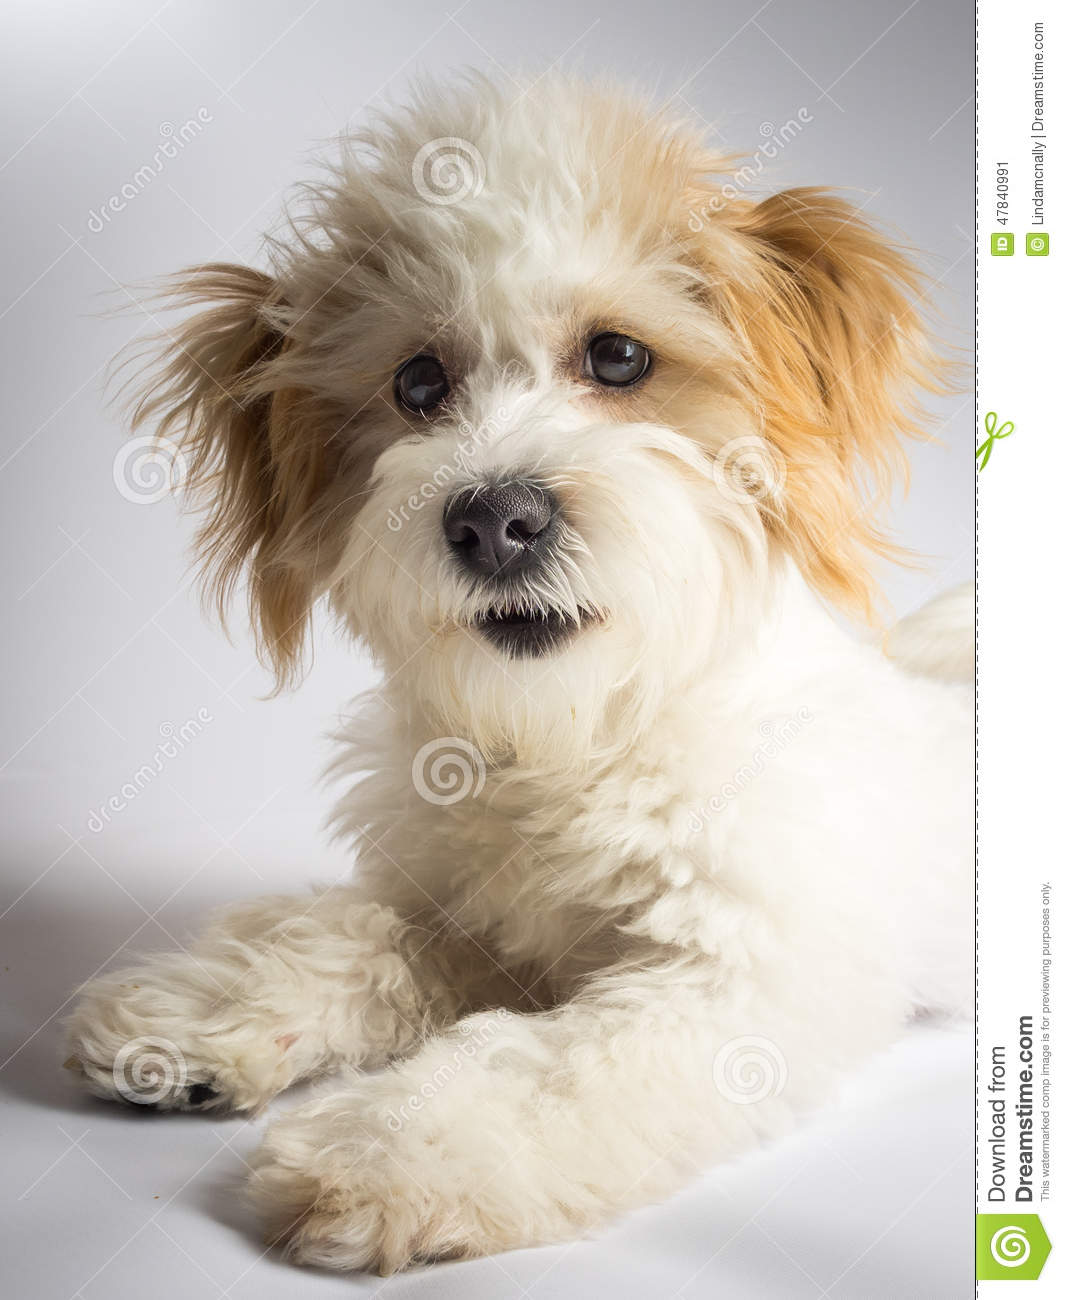 Cute Expressive White Mixed Breed Dog With Red Ears Stock Photo ...